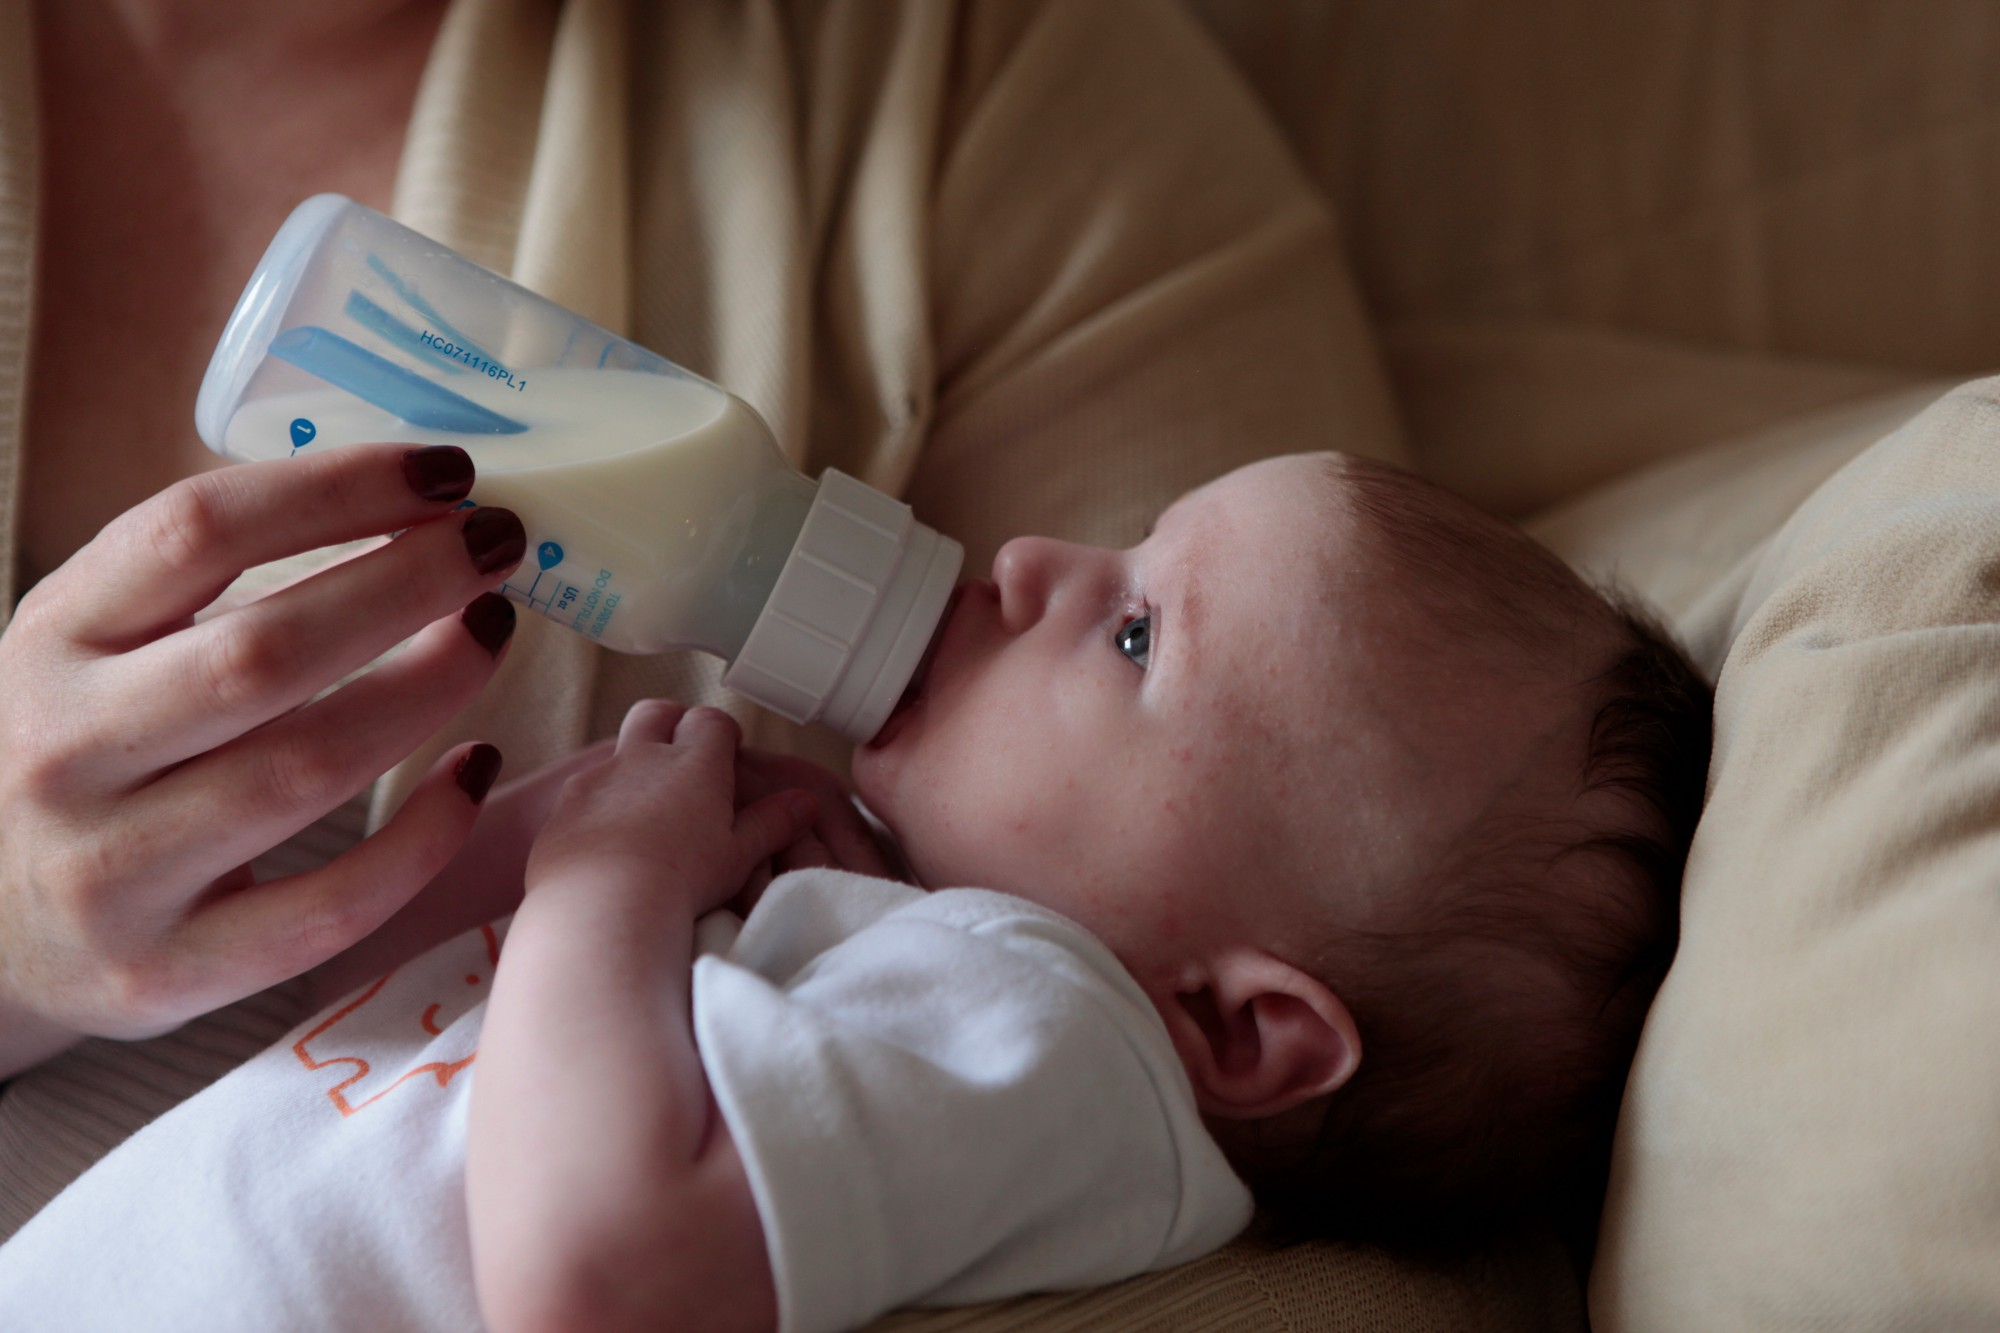 A mother embracing her baby while feeding her a bottle of formula.